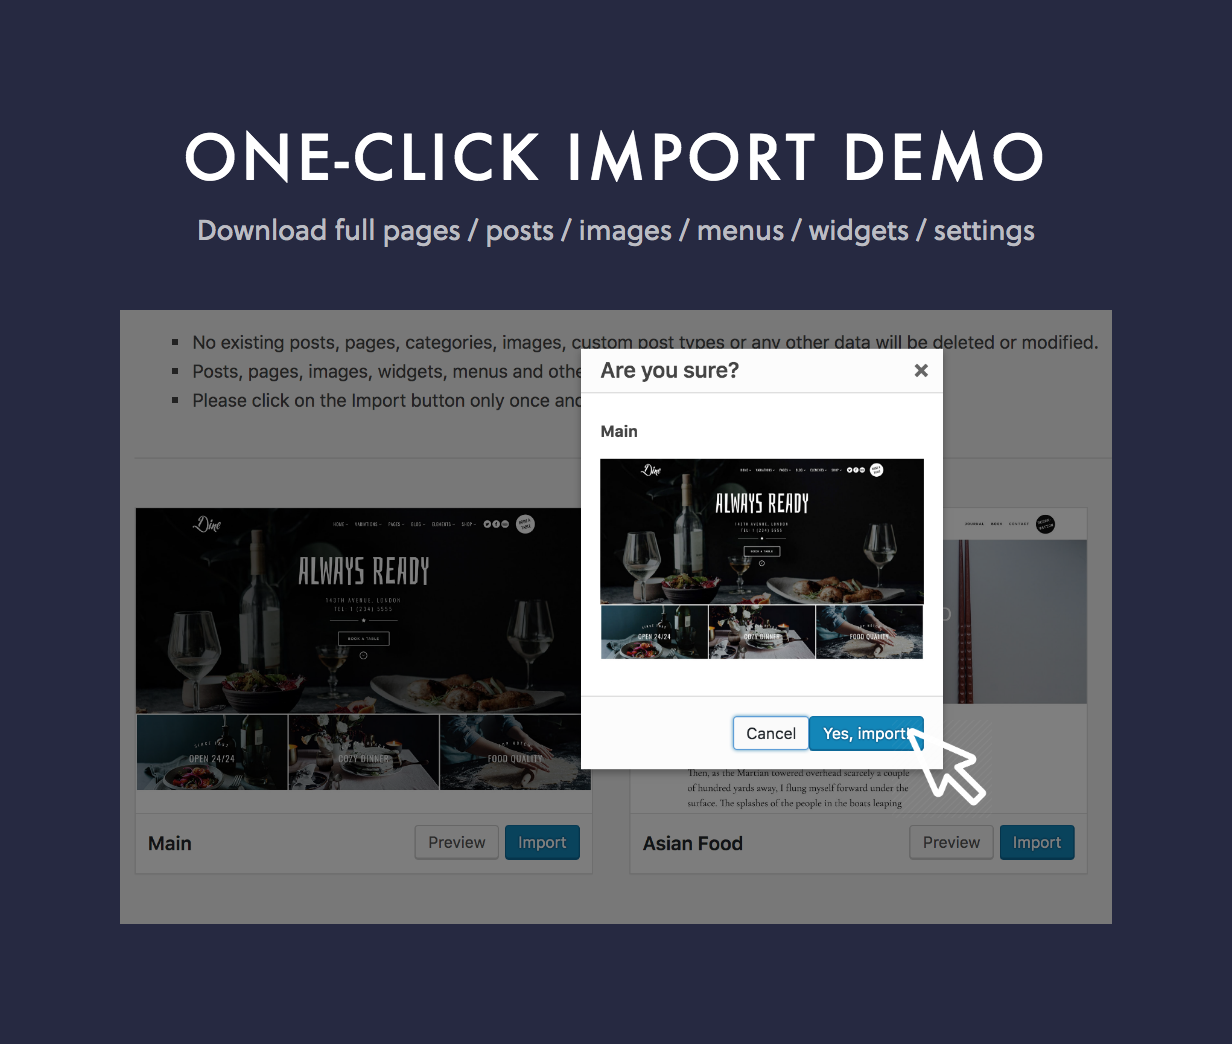 Dine One Click Import Demo